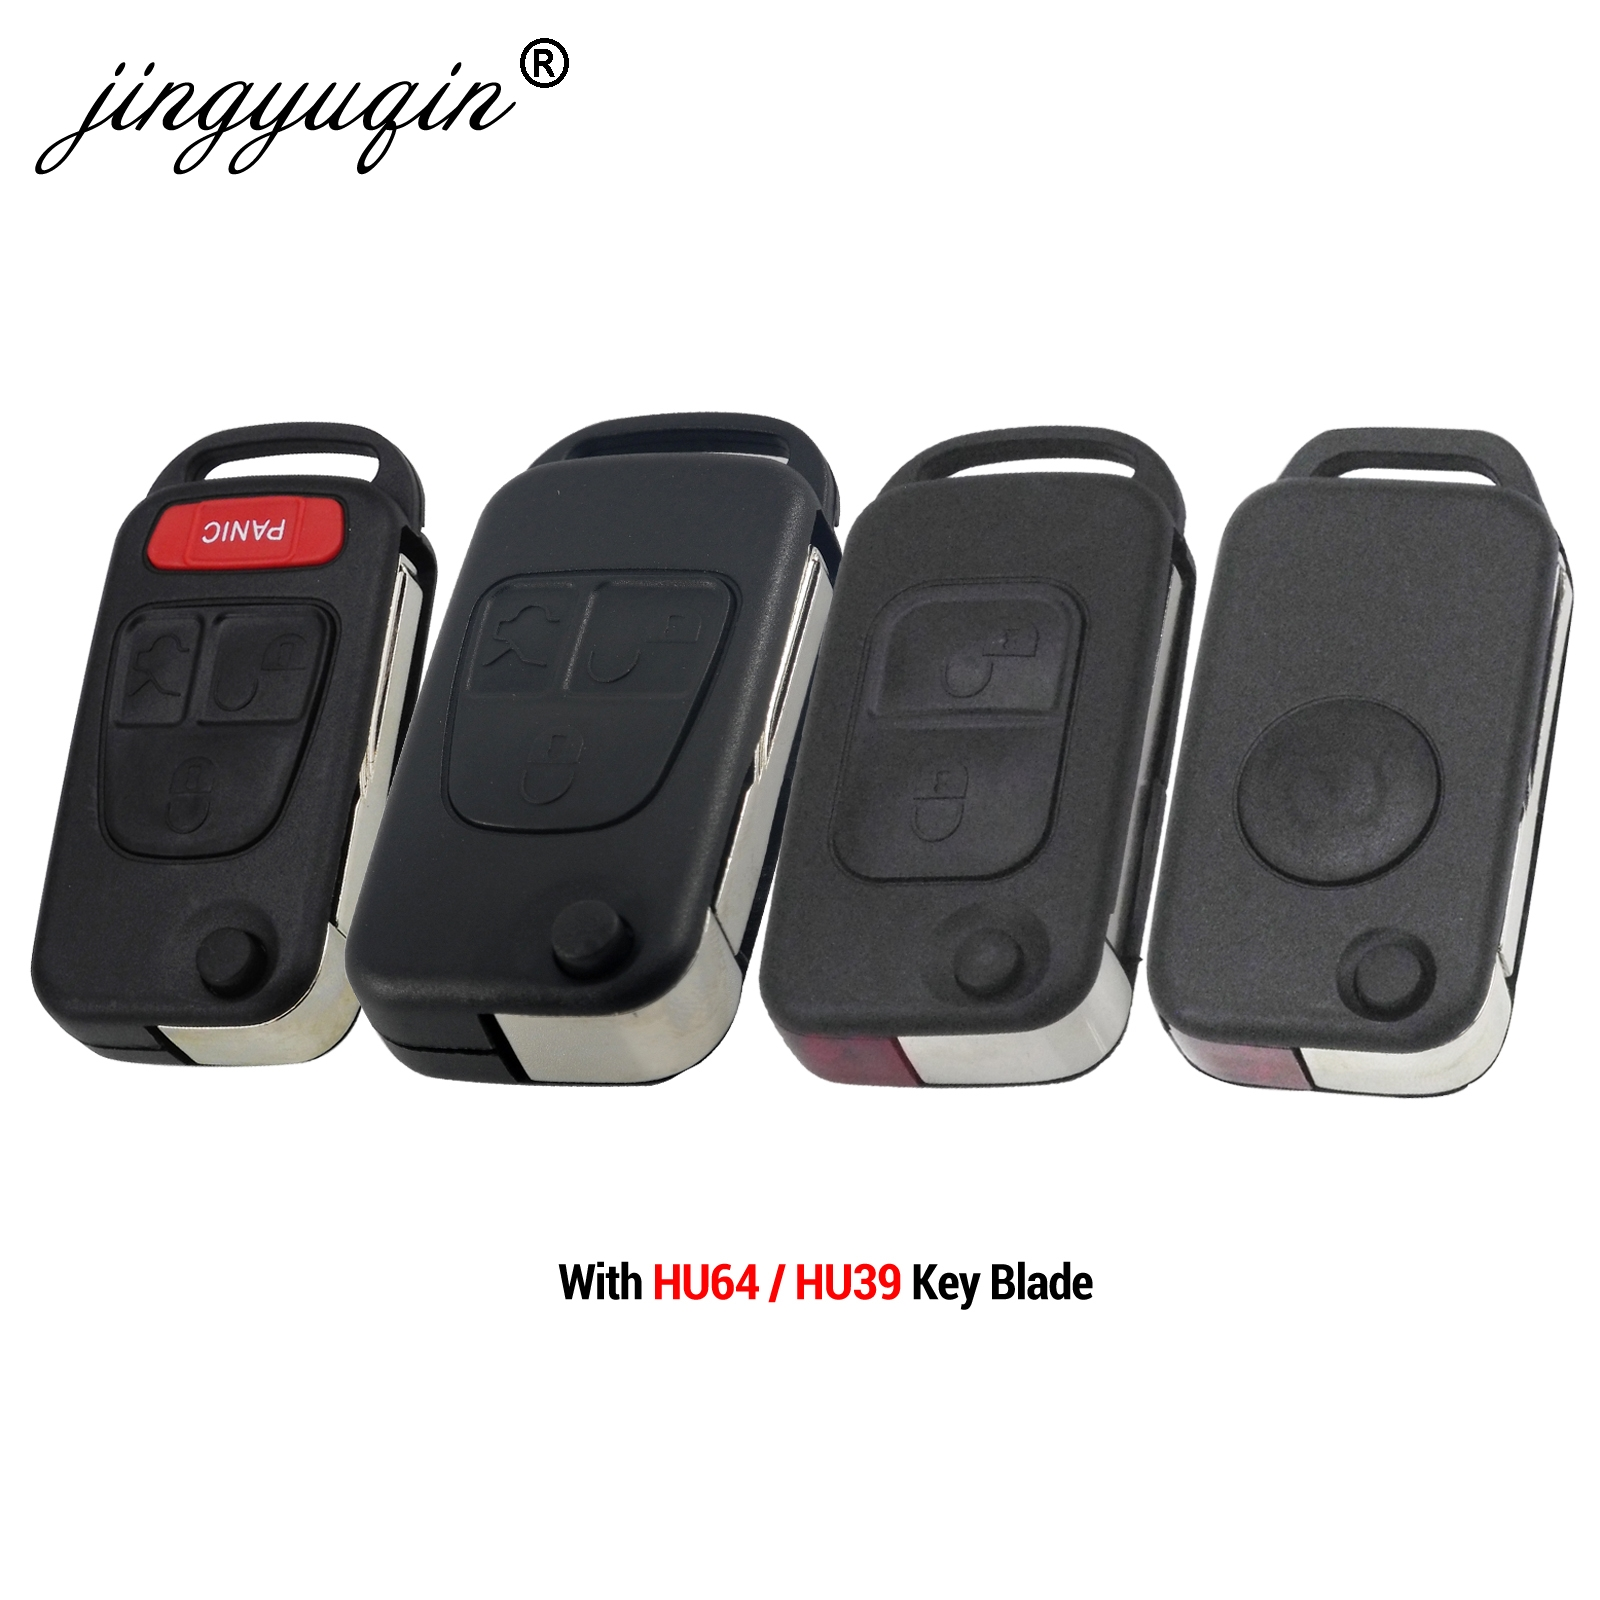 jingyuqin Flip Folding Remote <font><b>Key</b></font> shell 1/2/3/4 Button for <font><b>Mercedes</b></font> Benz SLK E113 A C E S W168 W124 W202 <font><b>W203</b></font> Auto Car <font><b>Key</b></font> Case image